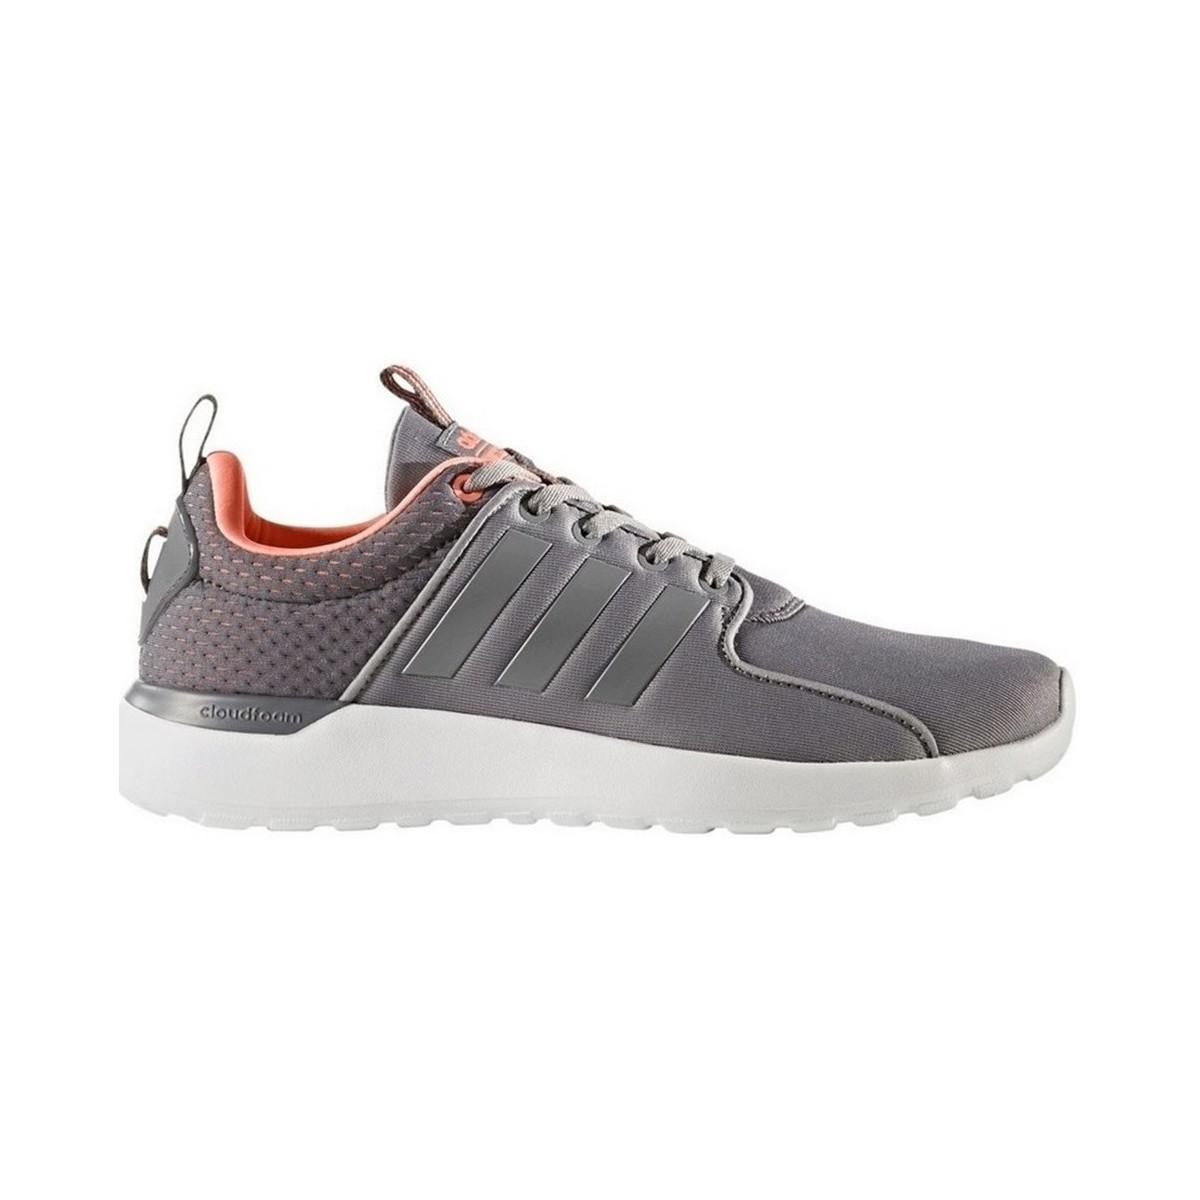 Adidas Neo Cloudfoam Cf Lite Racer Women s Shoes (trainers) In ... 1eaa30615